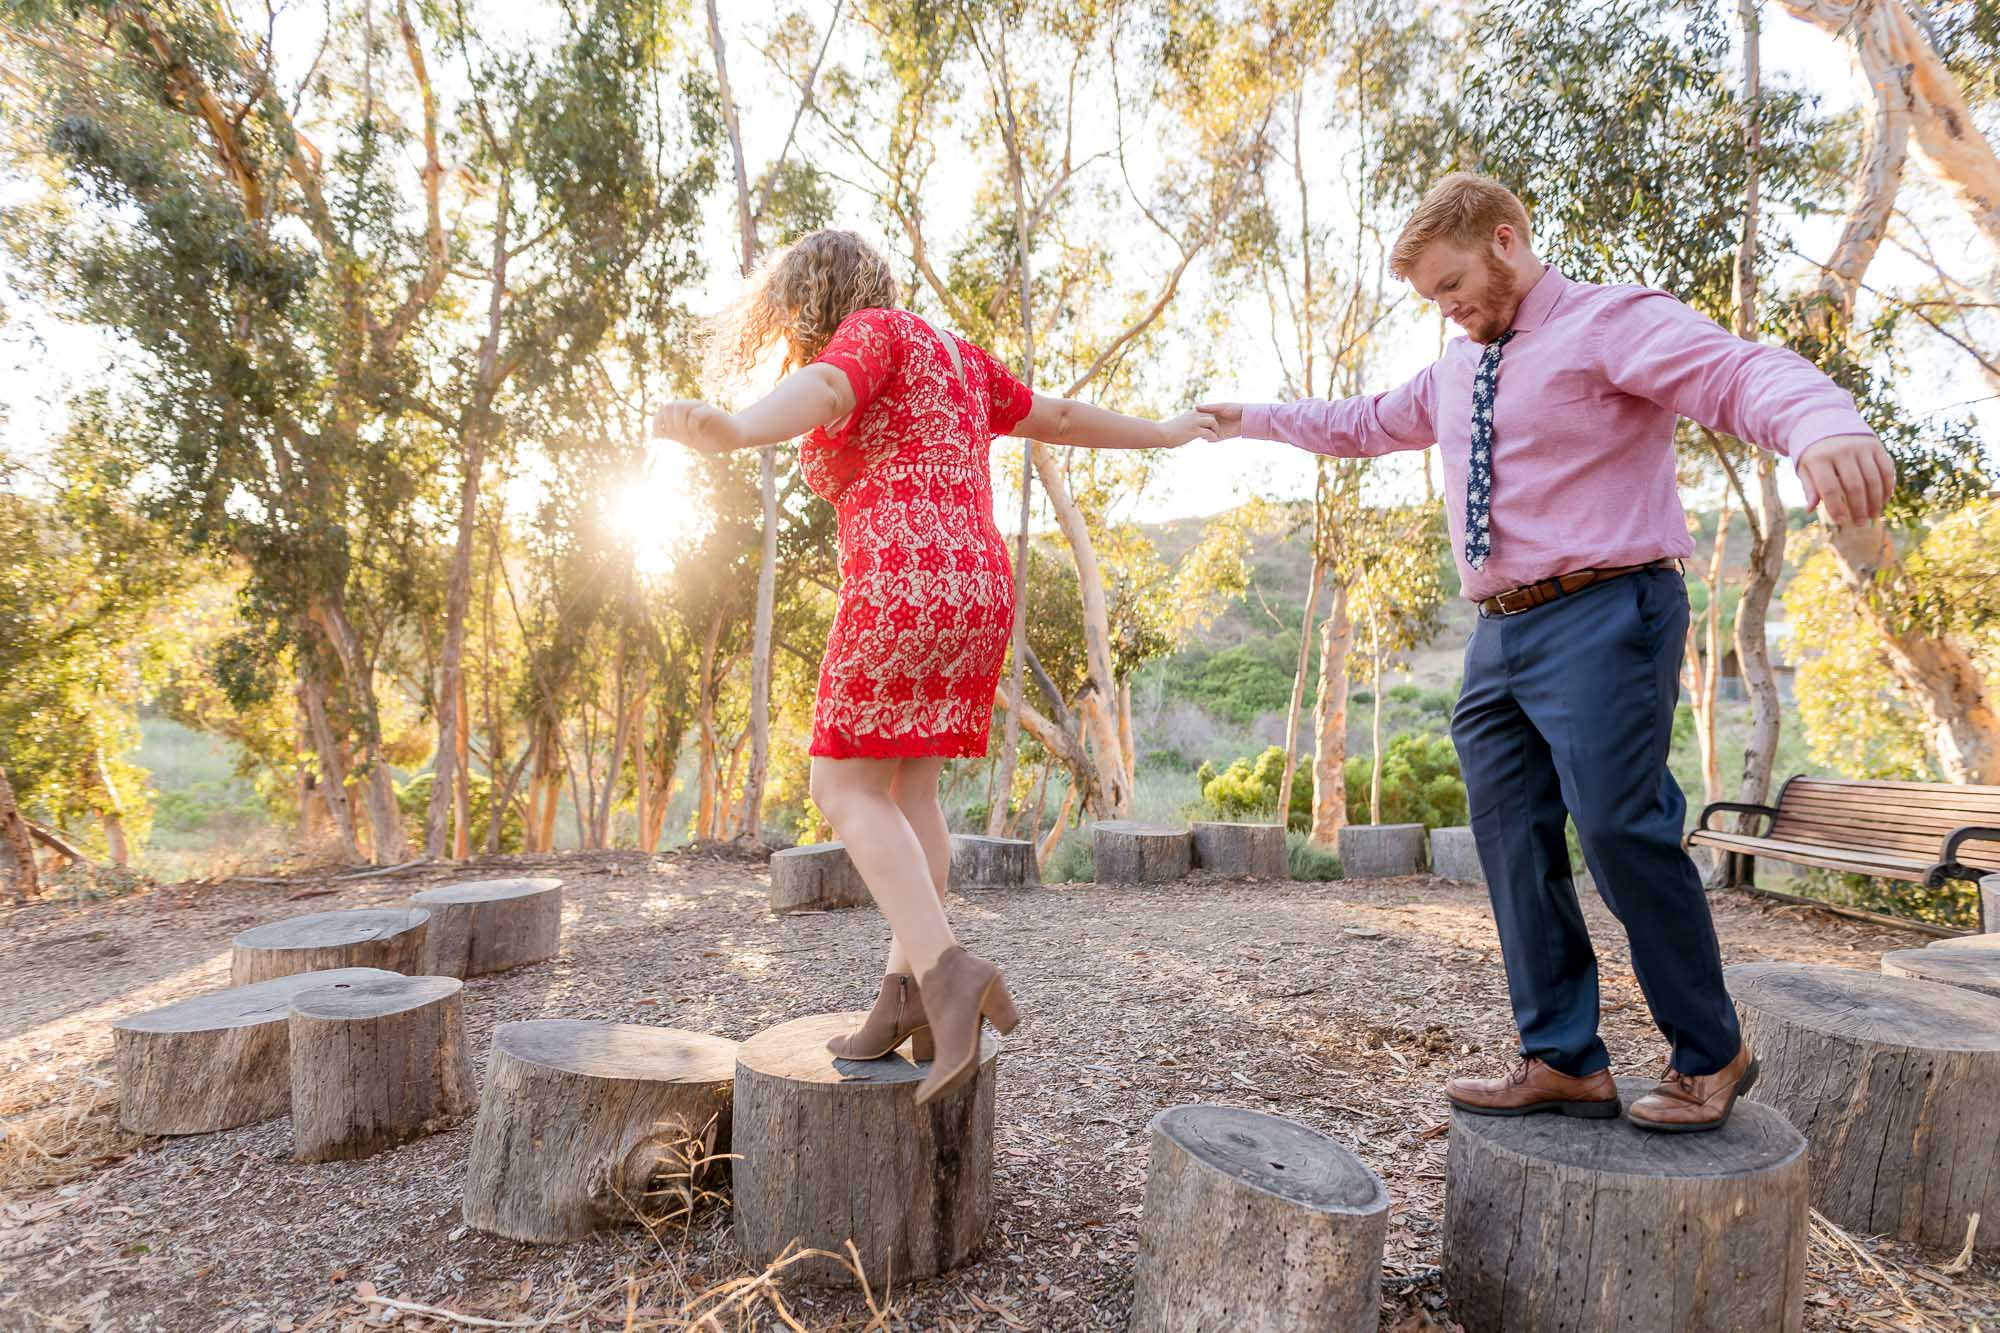 Tierney_Gregory_Batiquitos_Lagoon_Engagement_Session_087.jpg